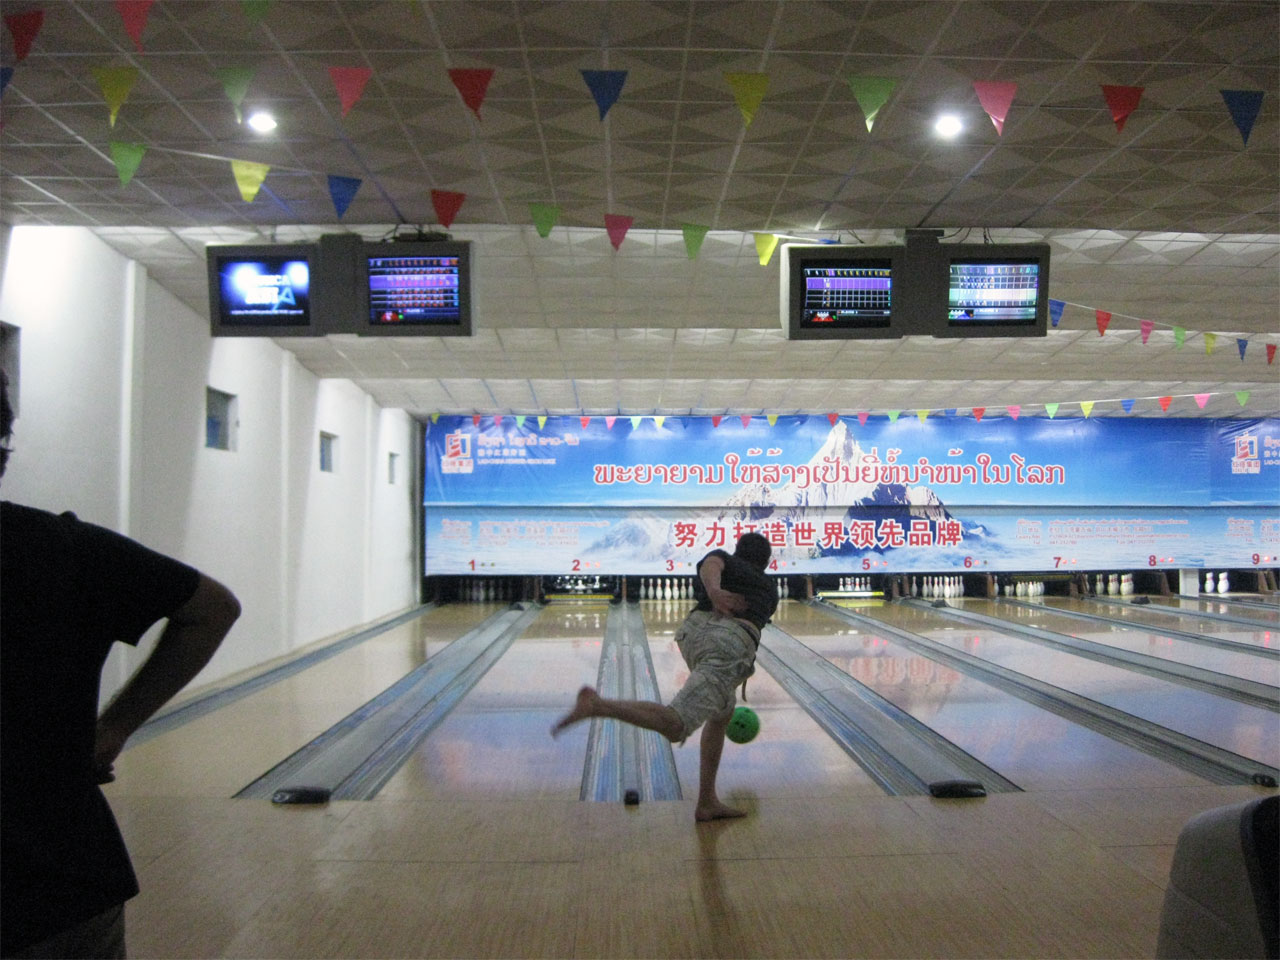 The bowling alley, Luang Prabang, Laos